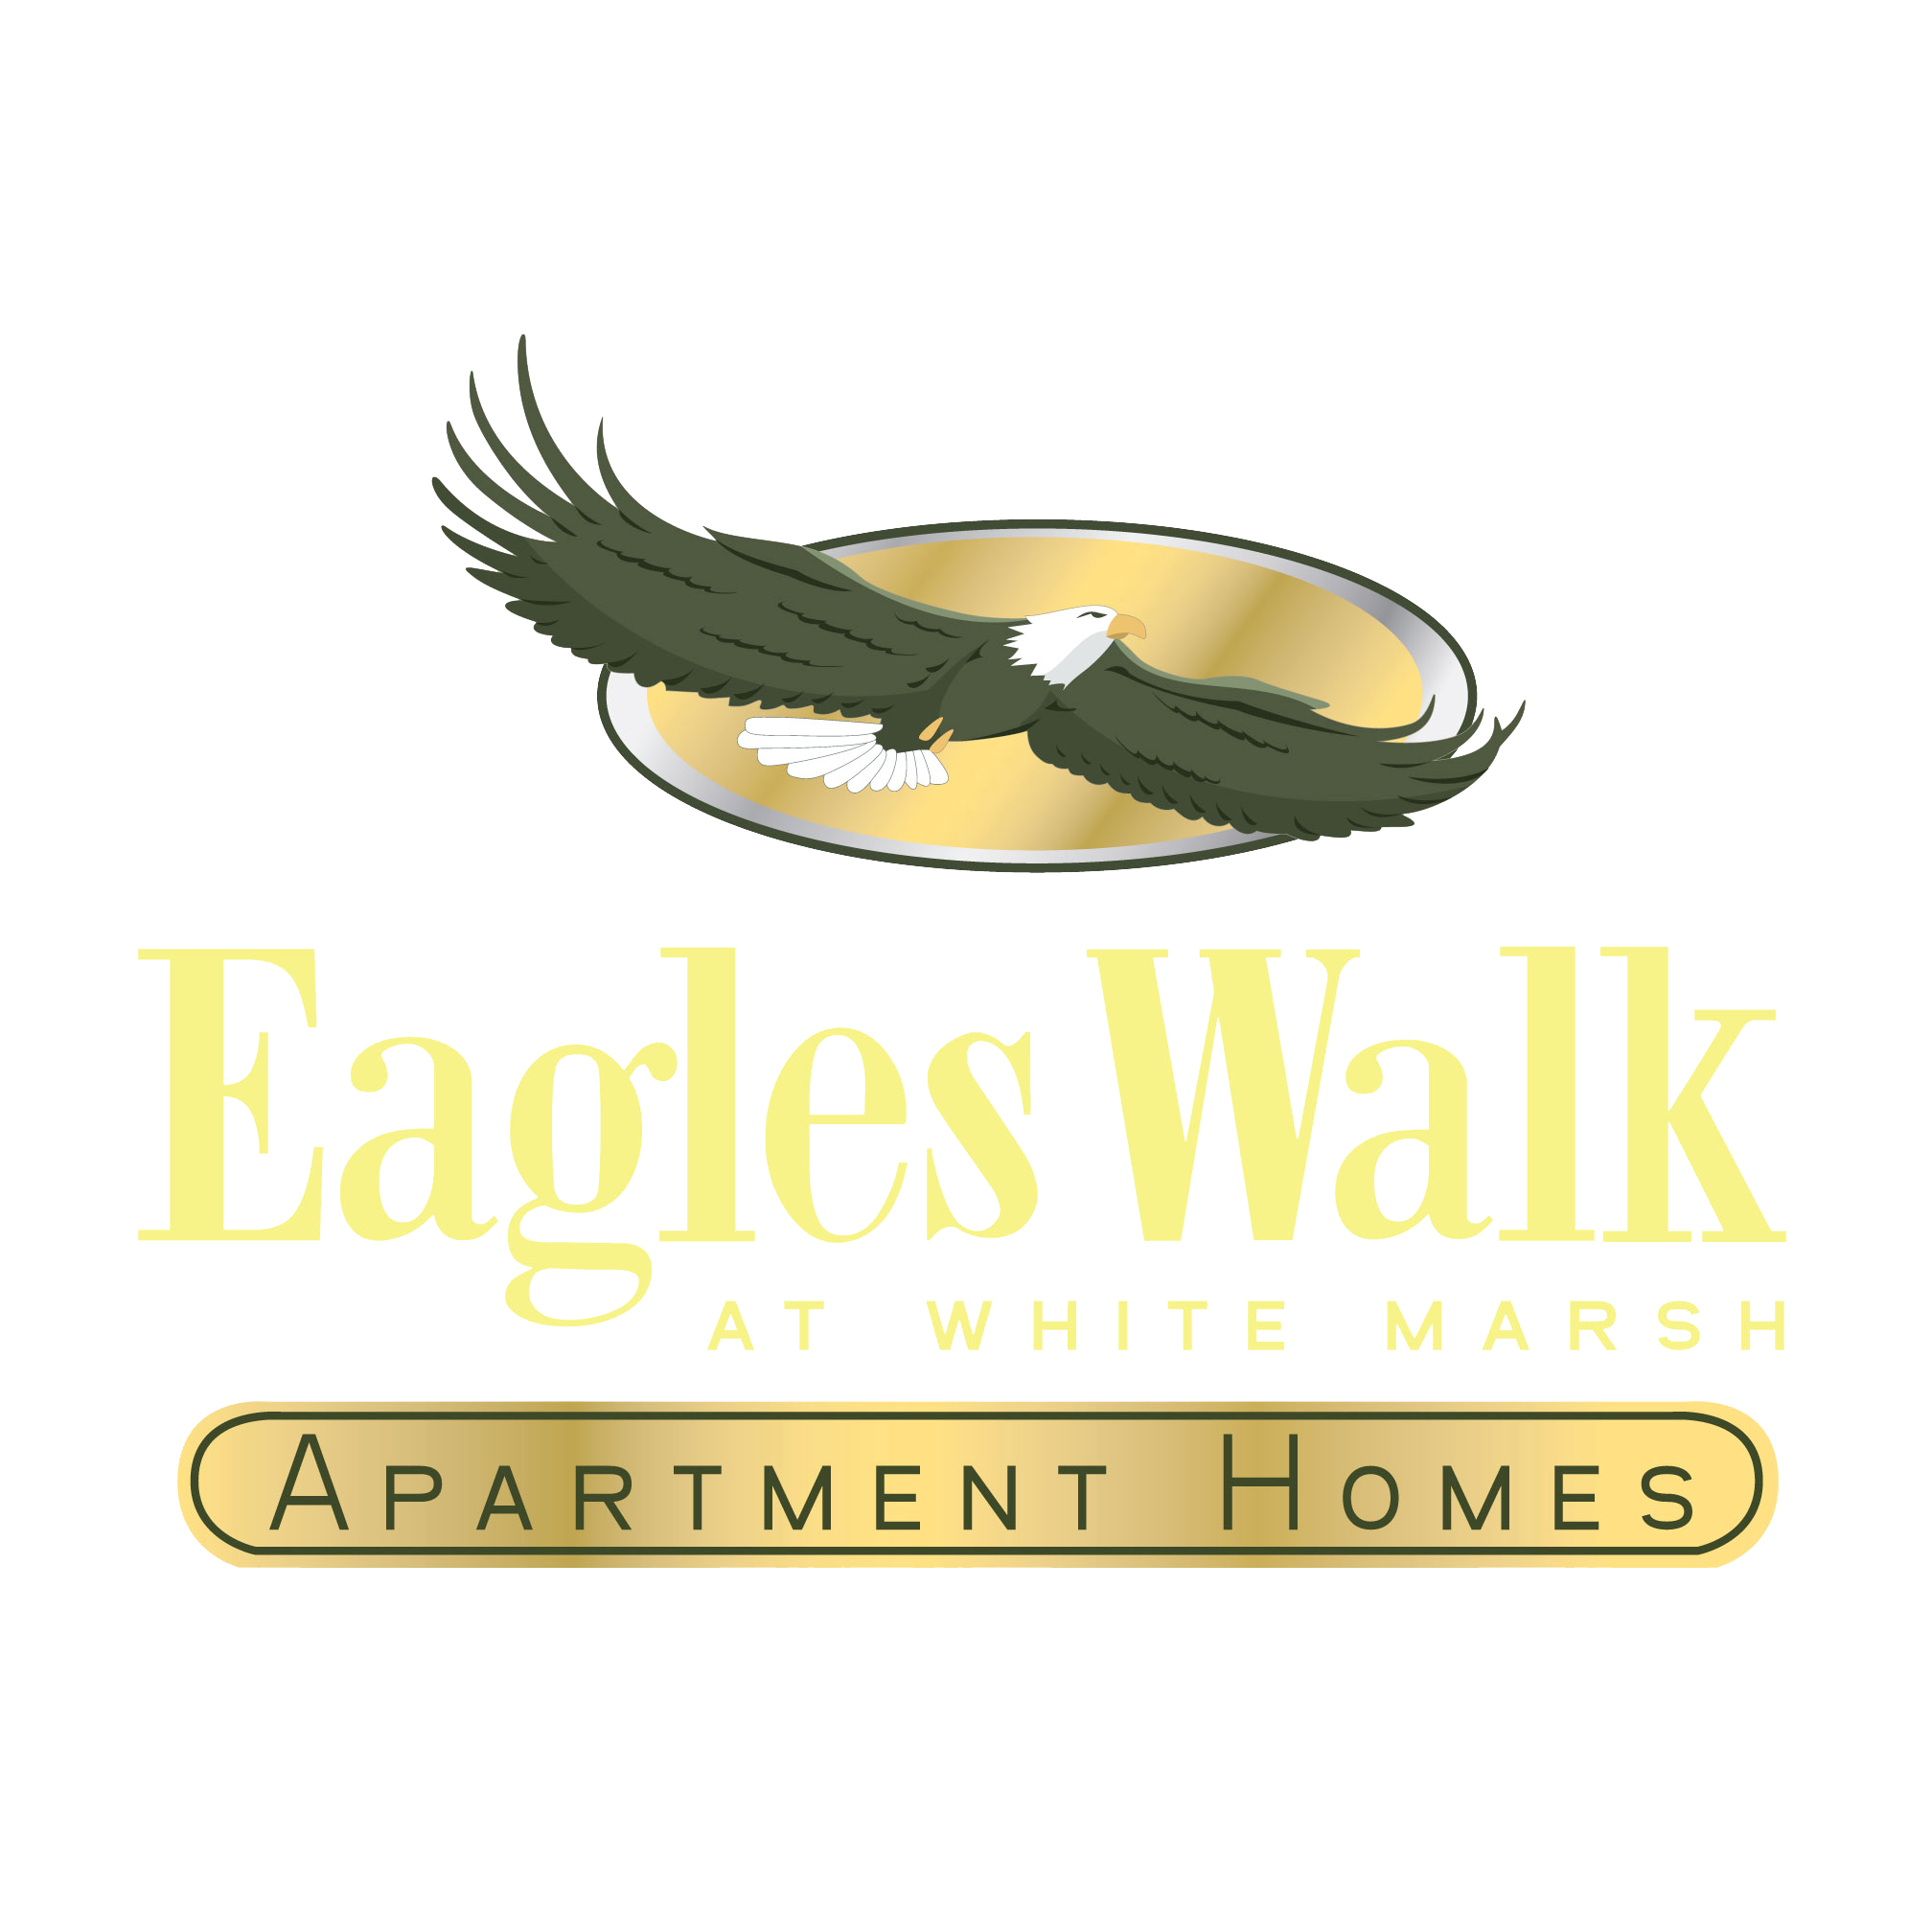 Eagles Walk Apartment Homes